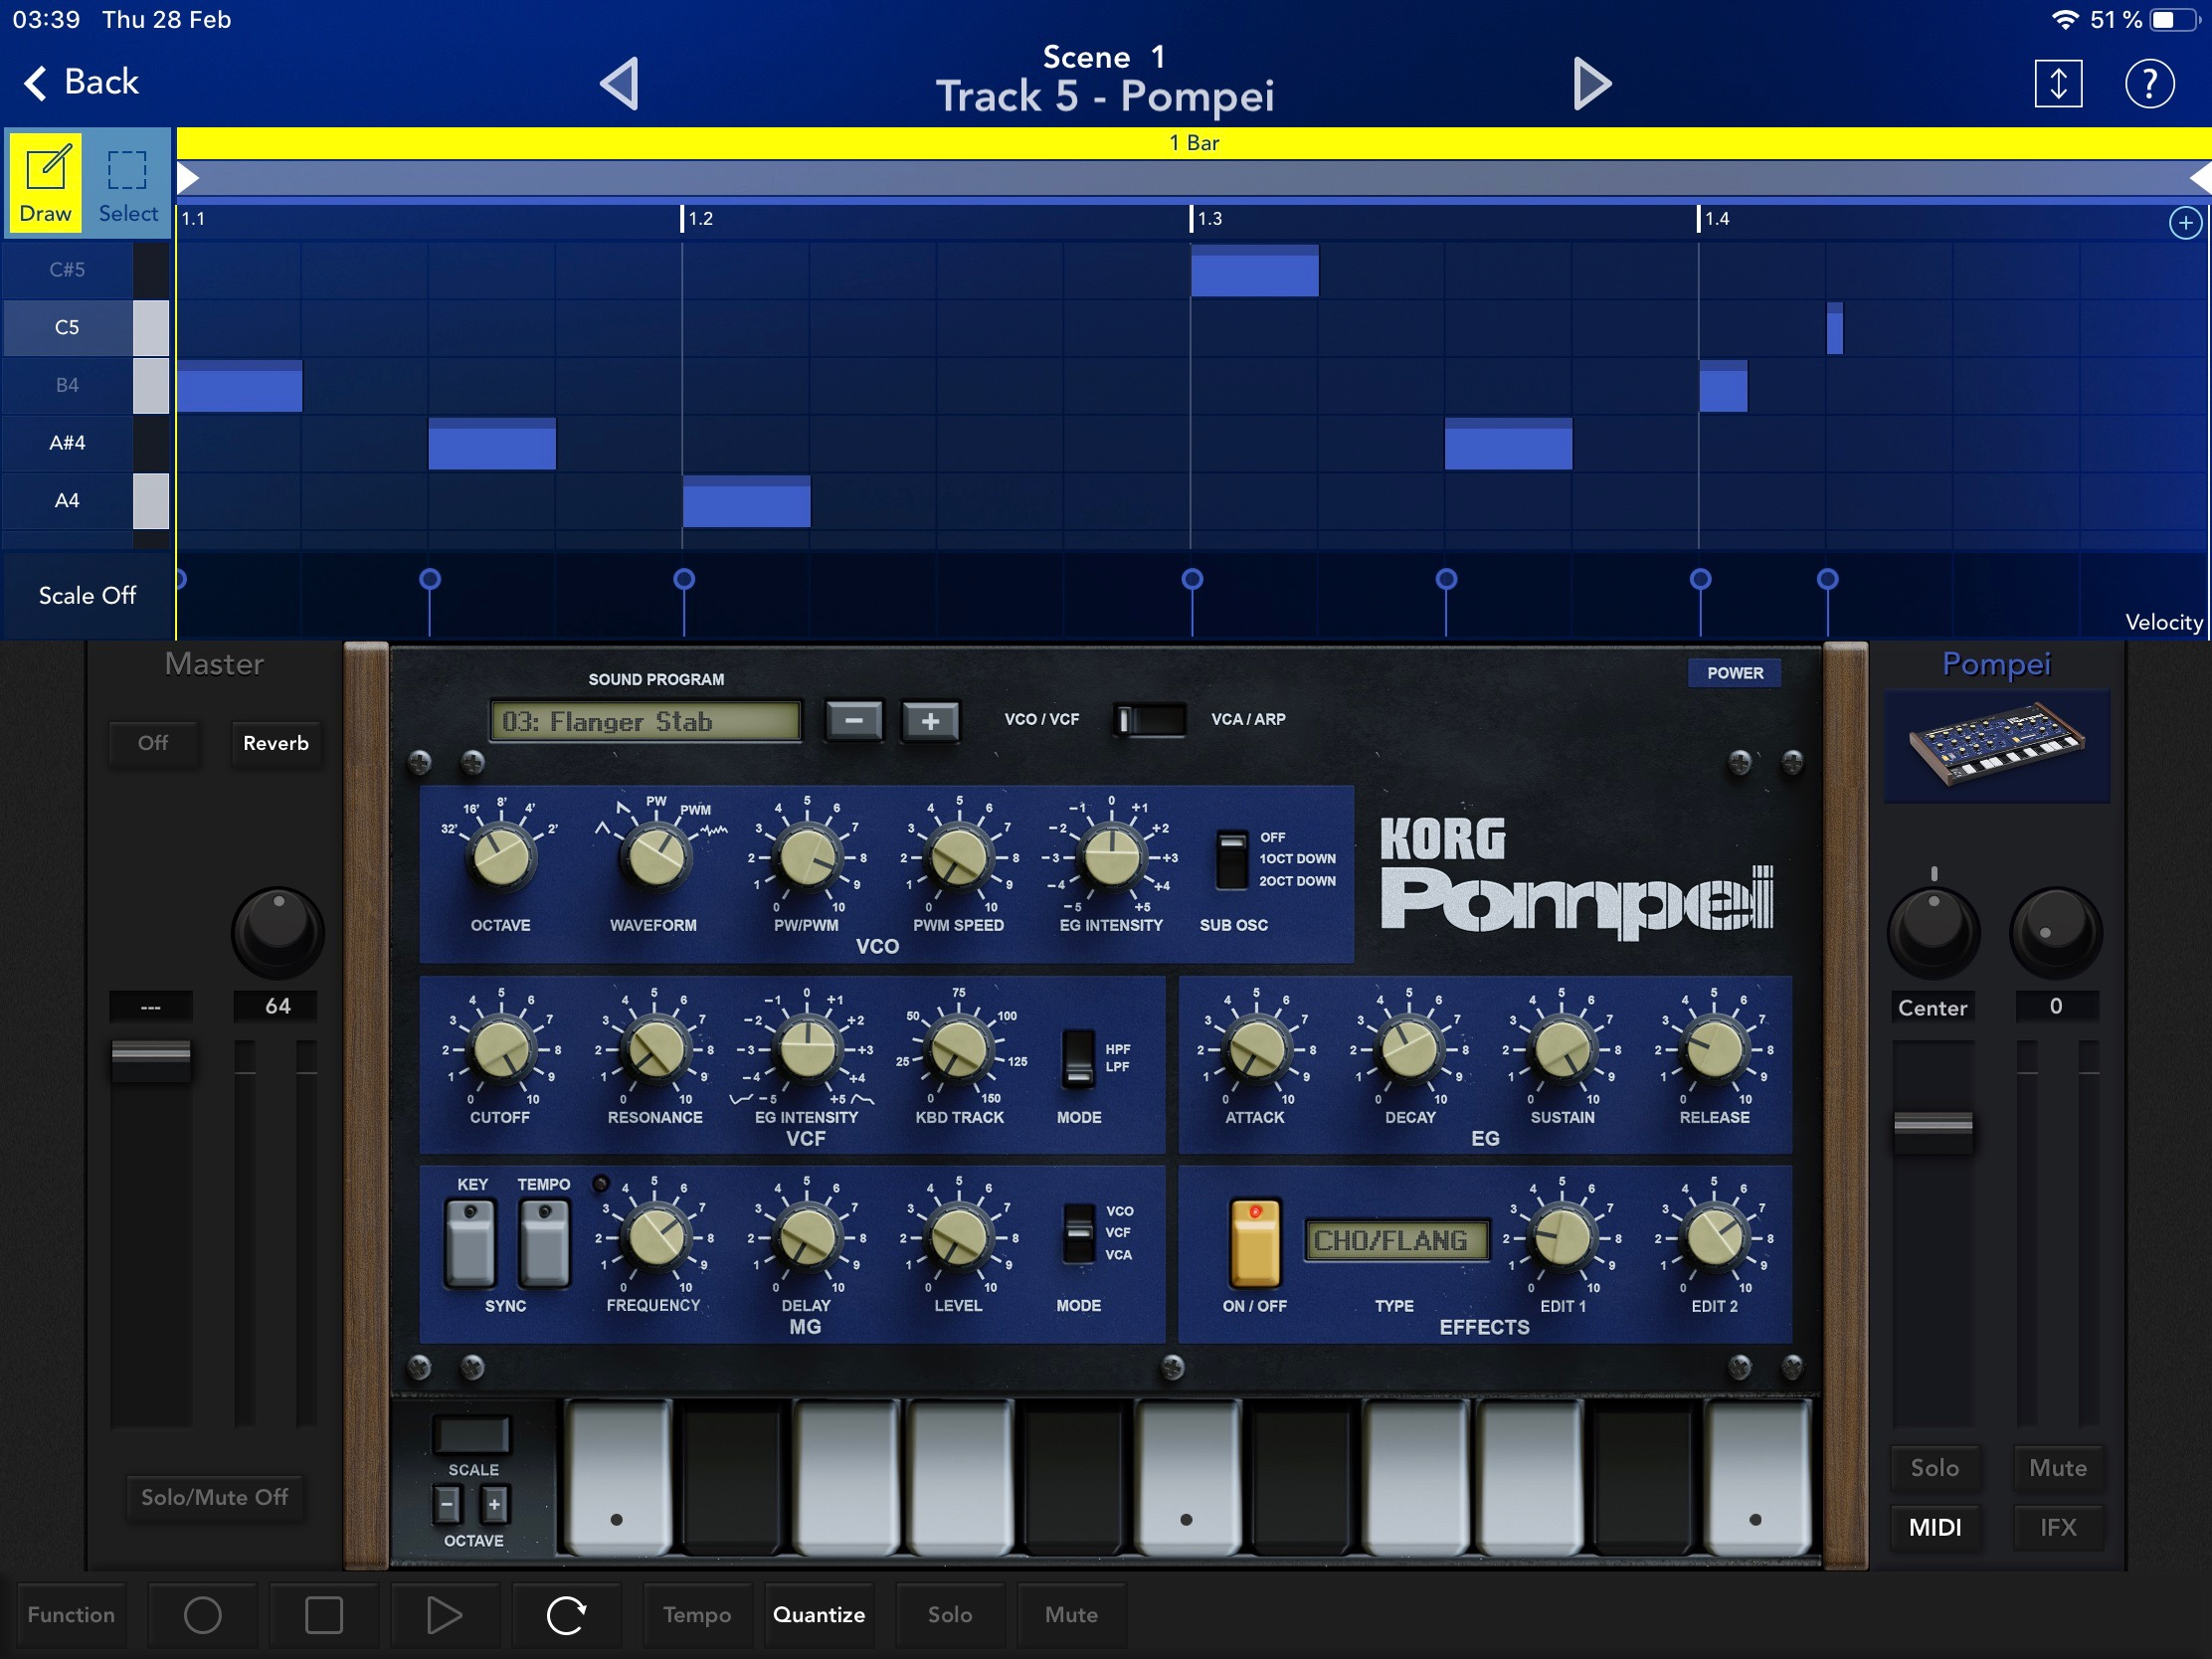 KORG Gadget 2 For iOS Out Now: New Design, Gadgets & More!